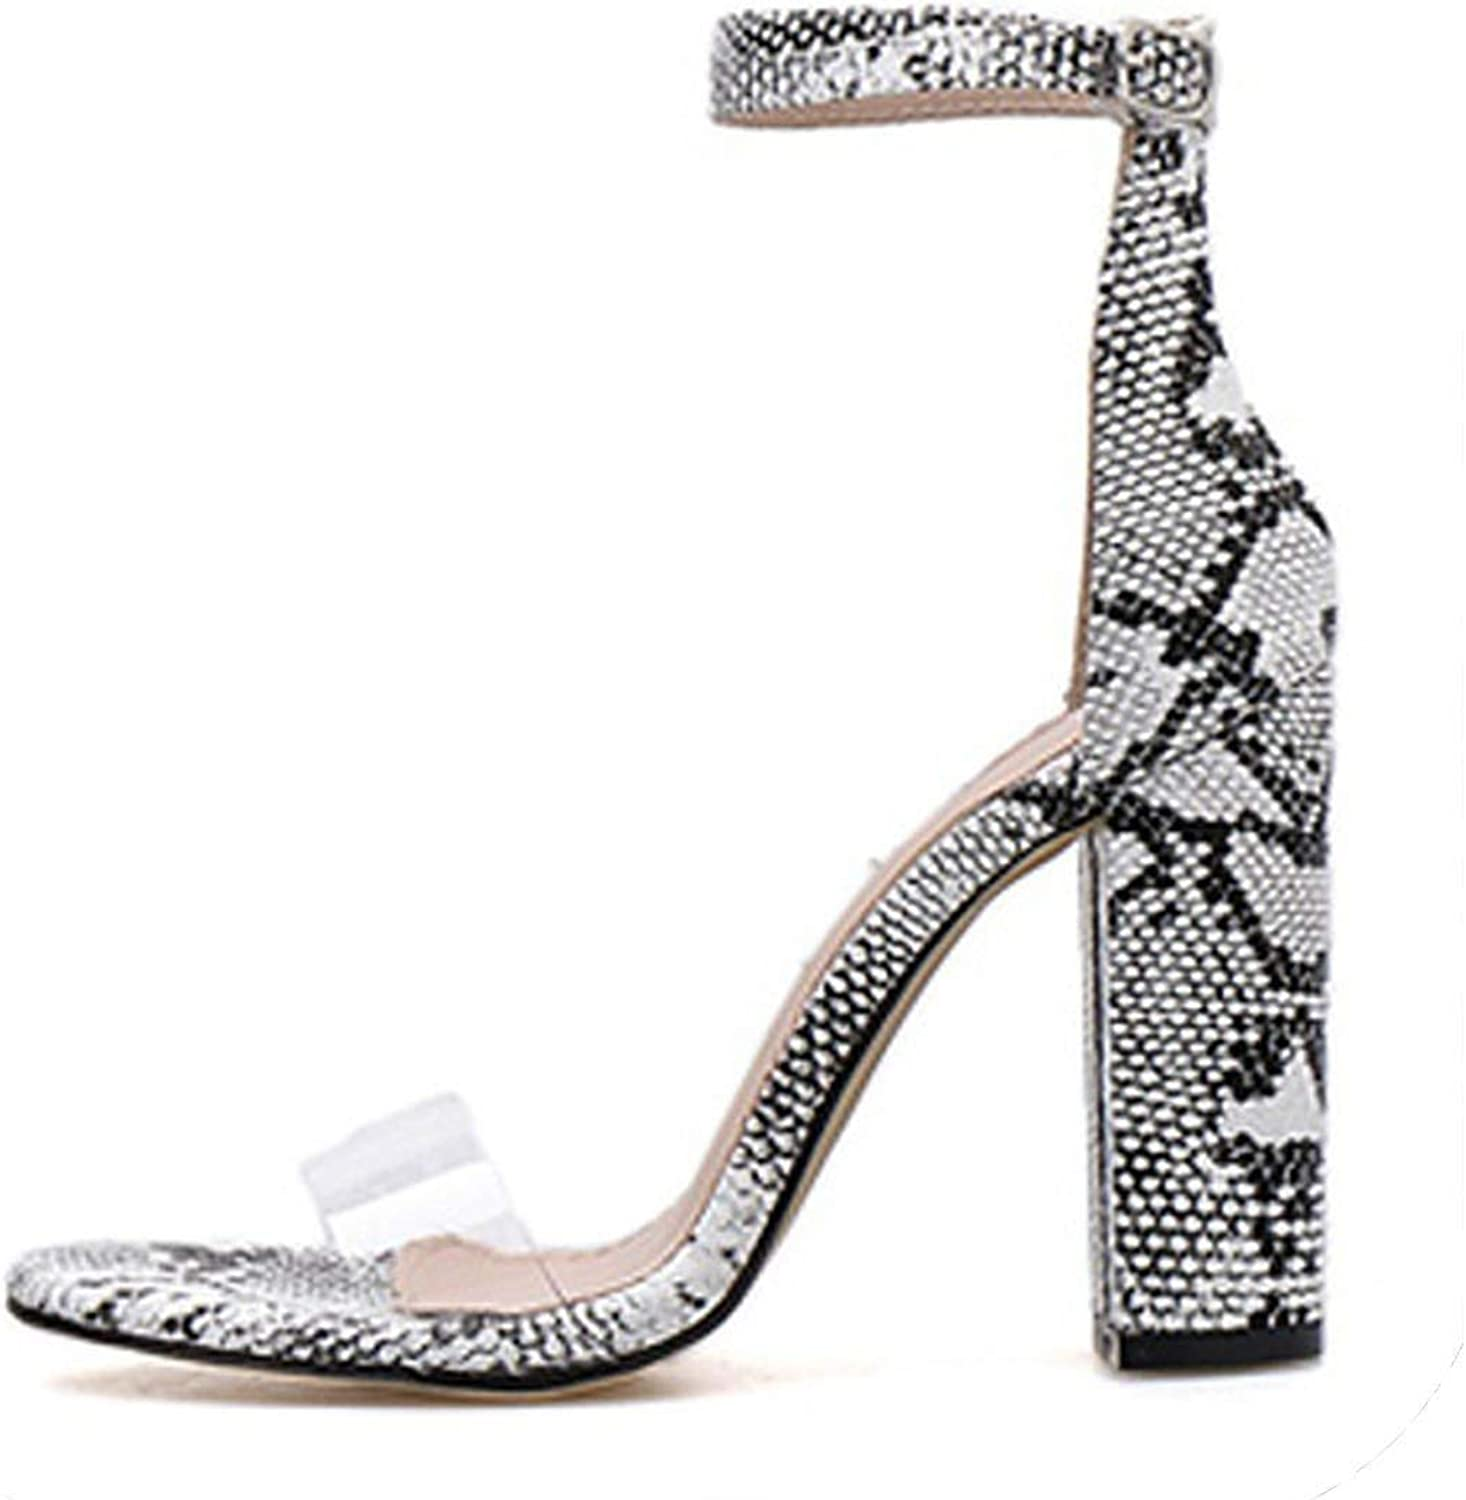 PVC Transparent Sandals Buckle Open-Toe Serpentine Square High Heels Sexy Party Fluorescent shoes